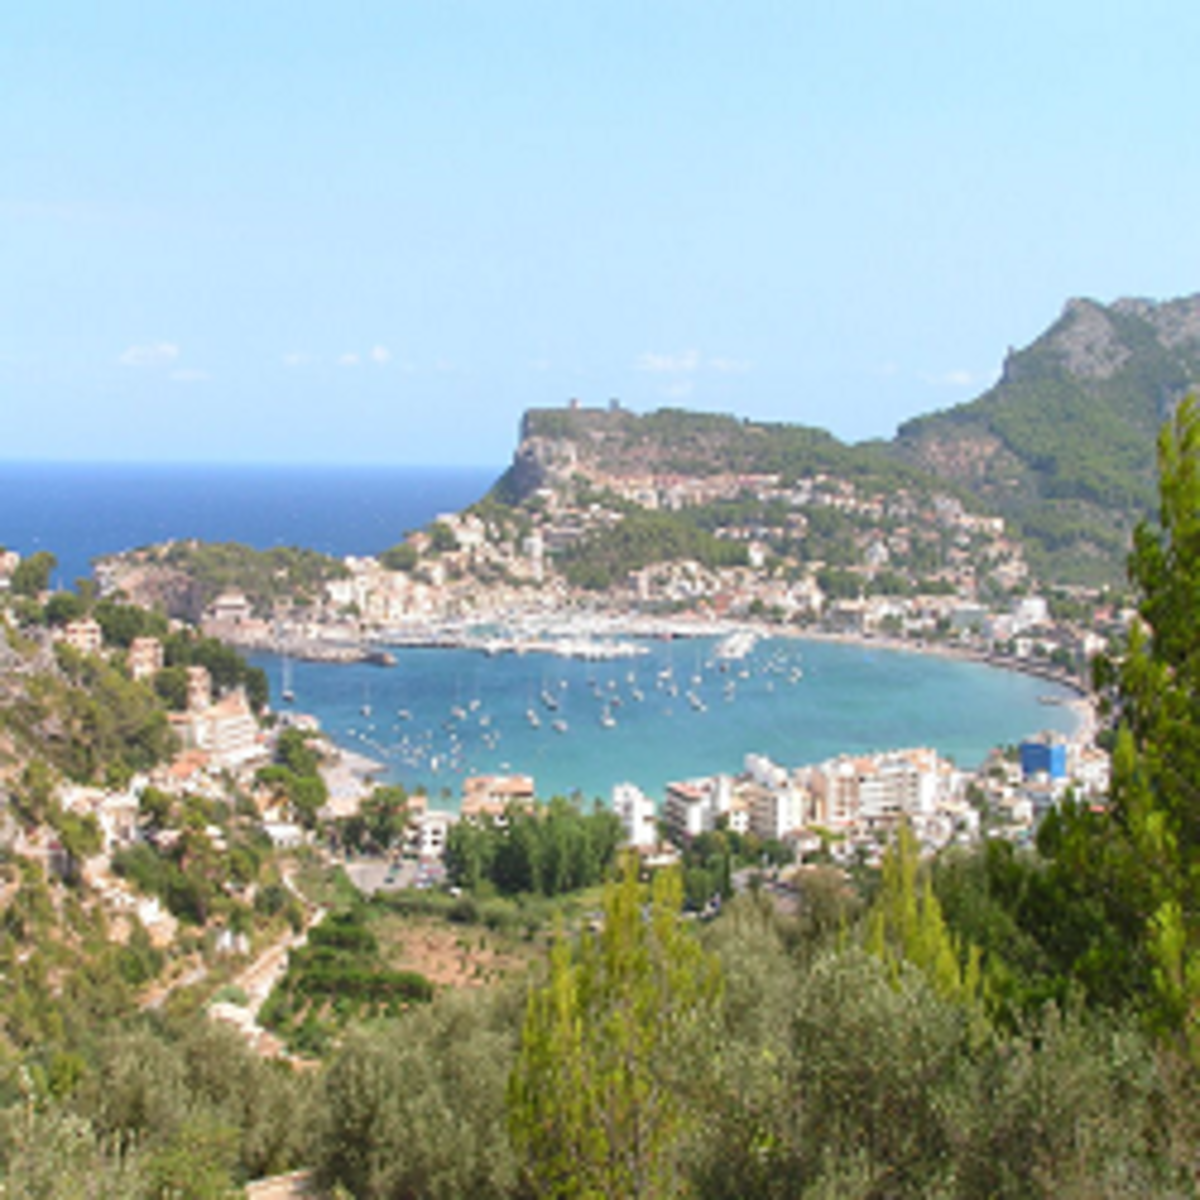 The Port of Soller in Mallorca by an English local